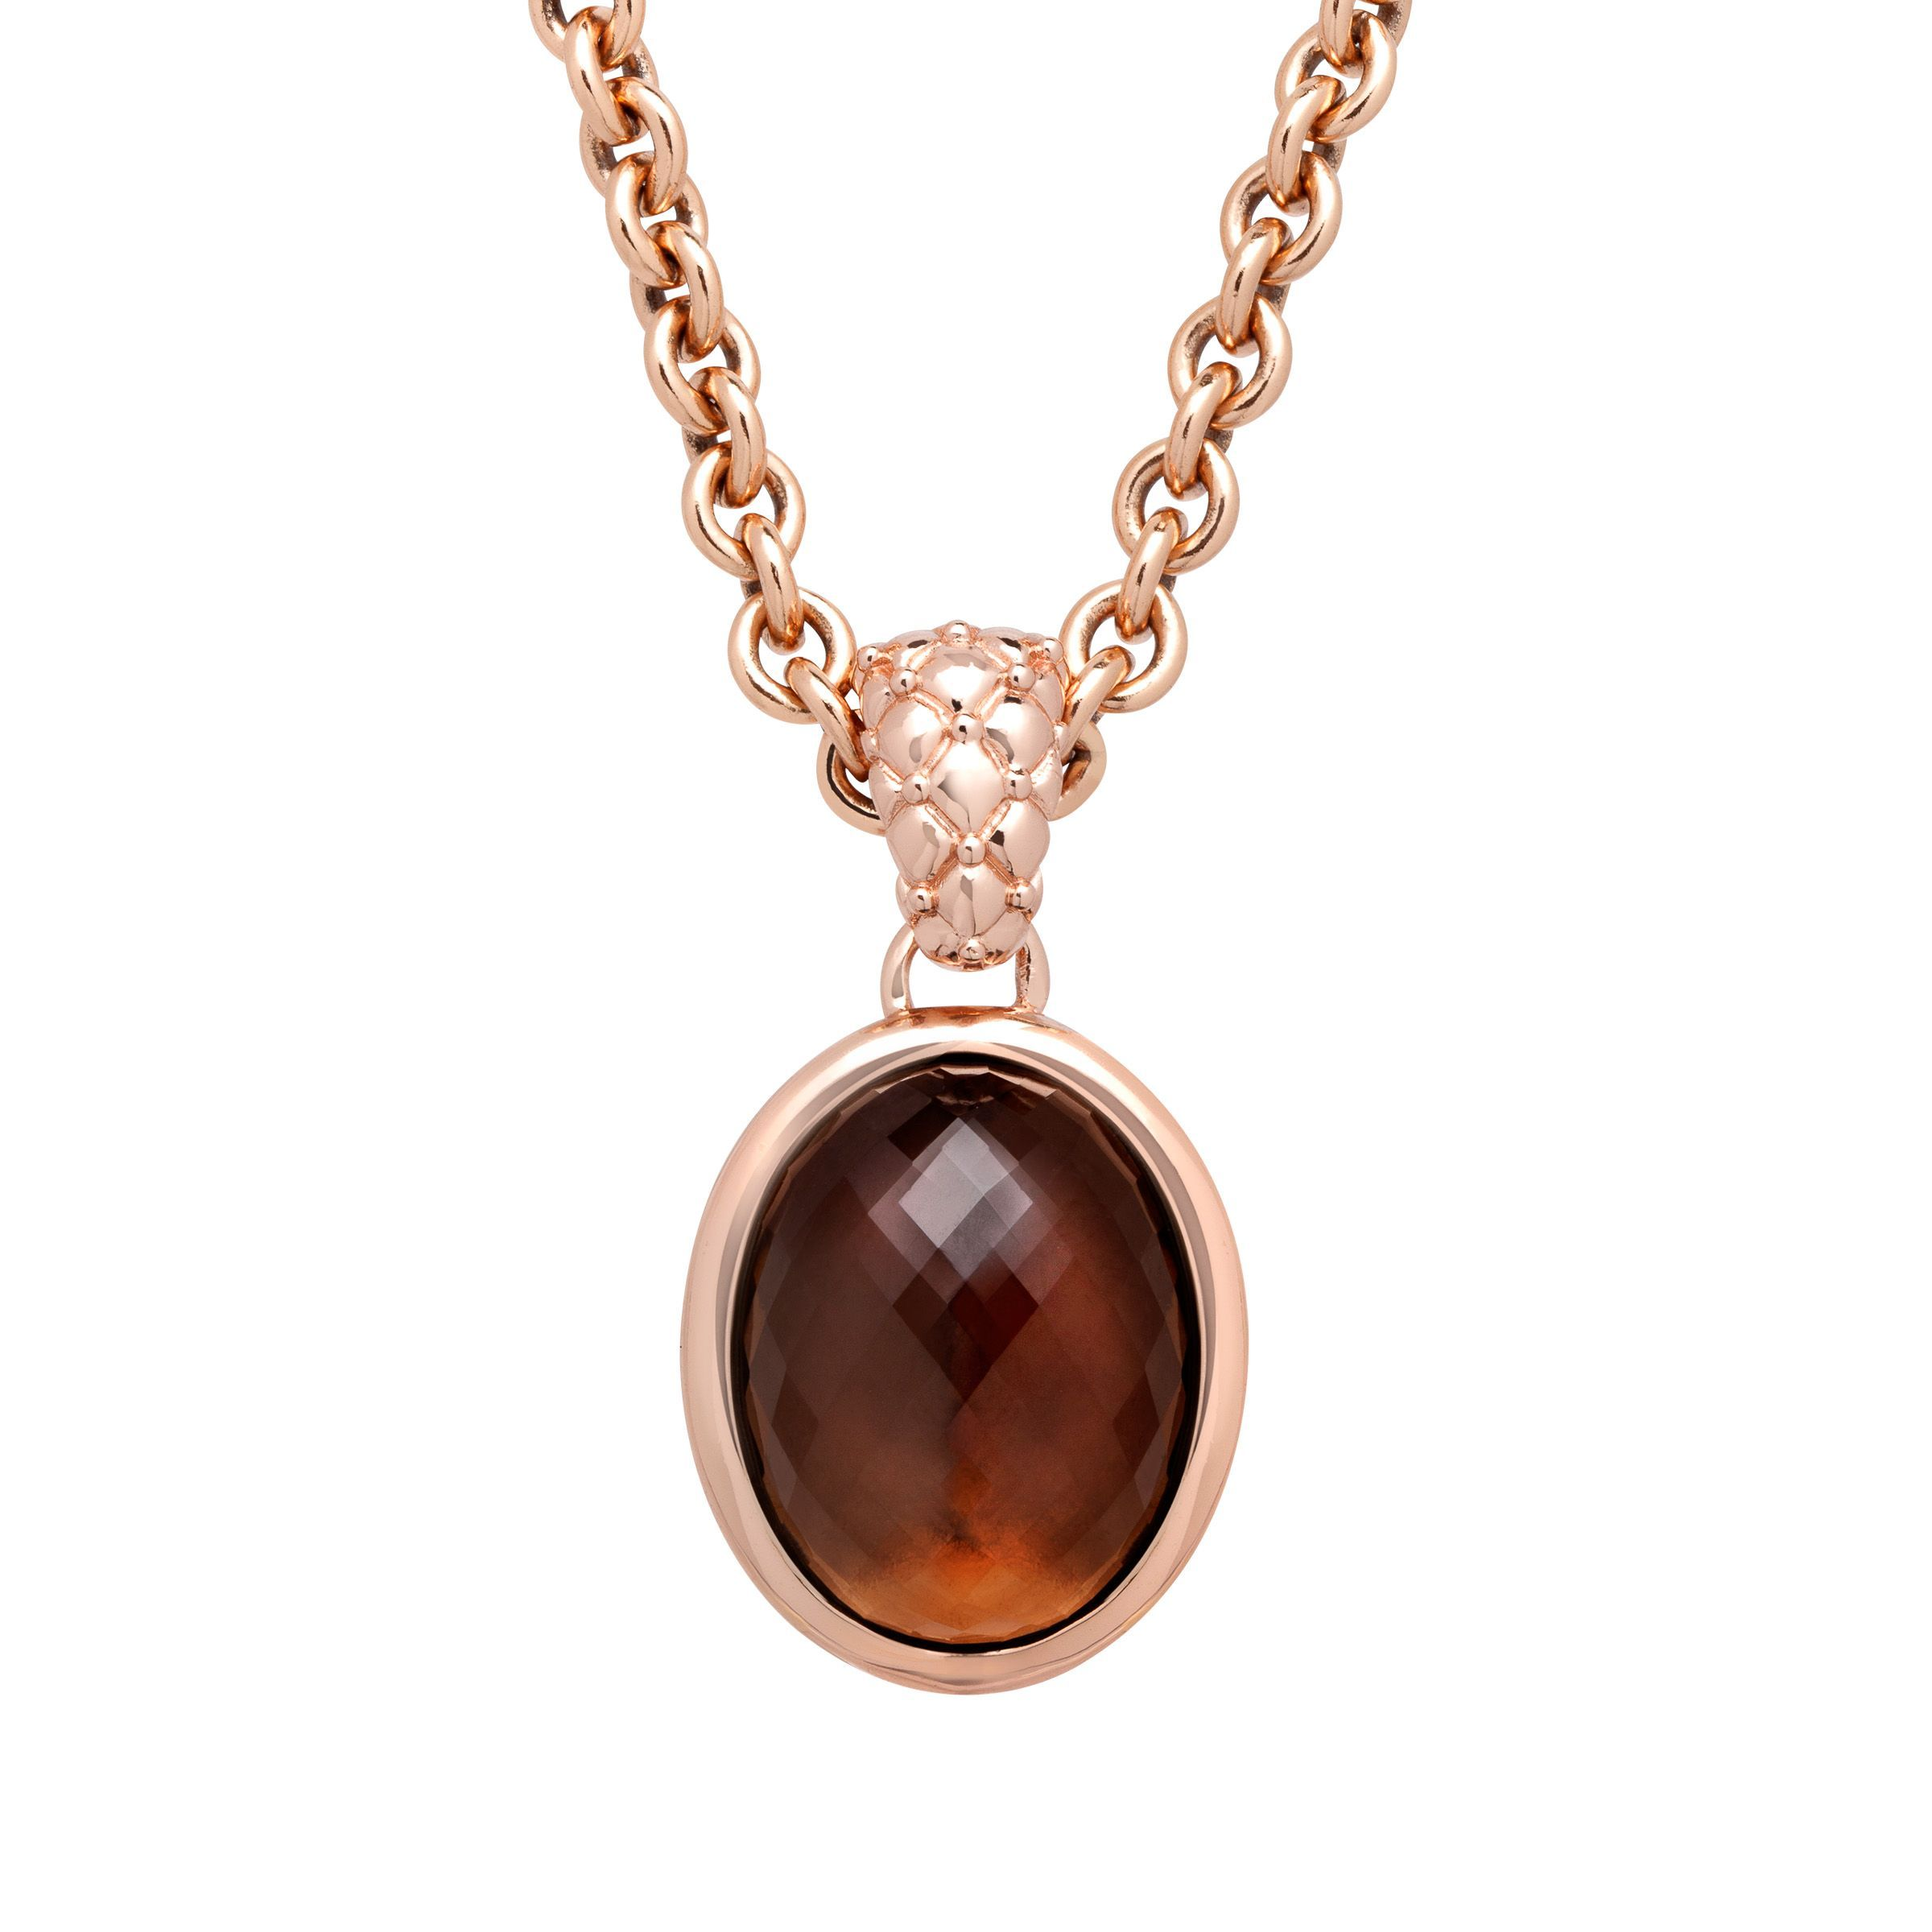 22 ct smoky quartz pendant in 18k rose gold plated bronze 22 ct smoky quartz pendant in 18k rose gold plated bronze aloadofball Image collections